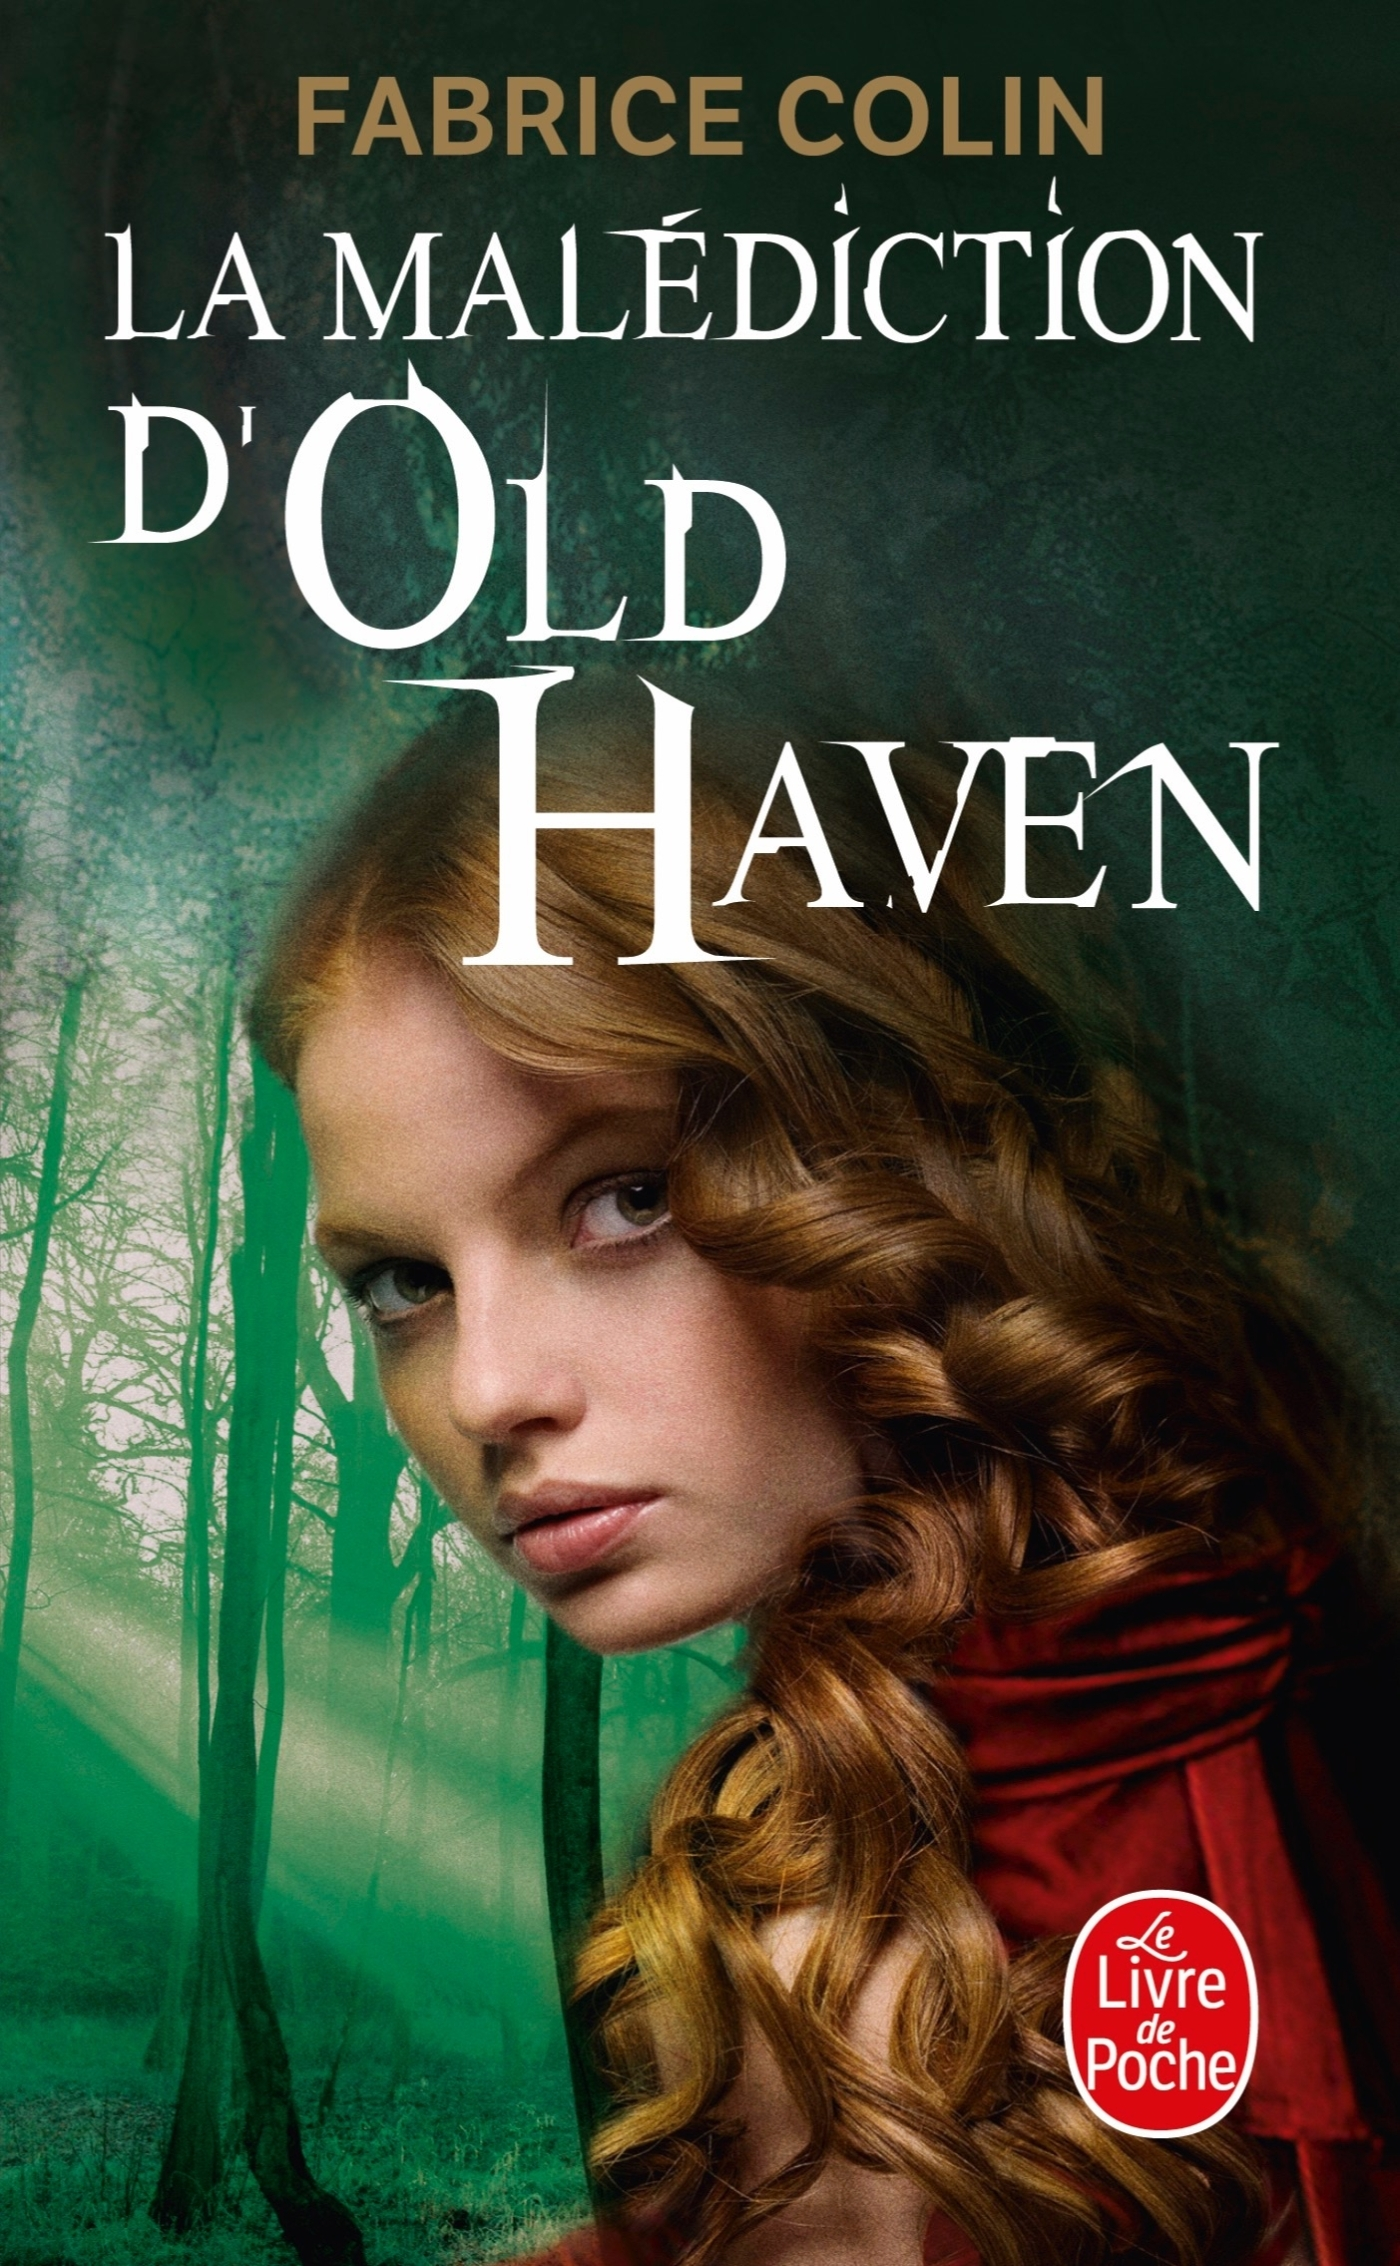 LA MALEDICTION D'OLD HAVEN